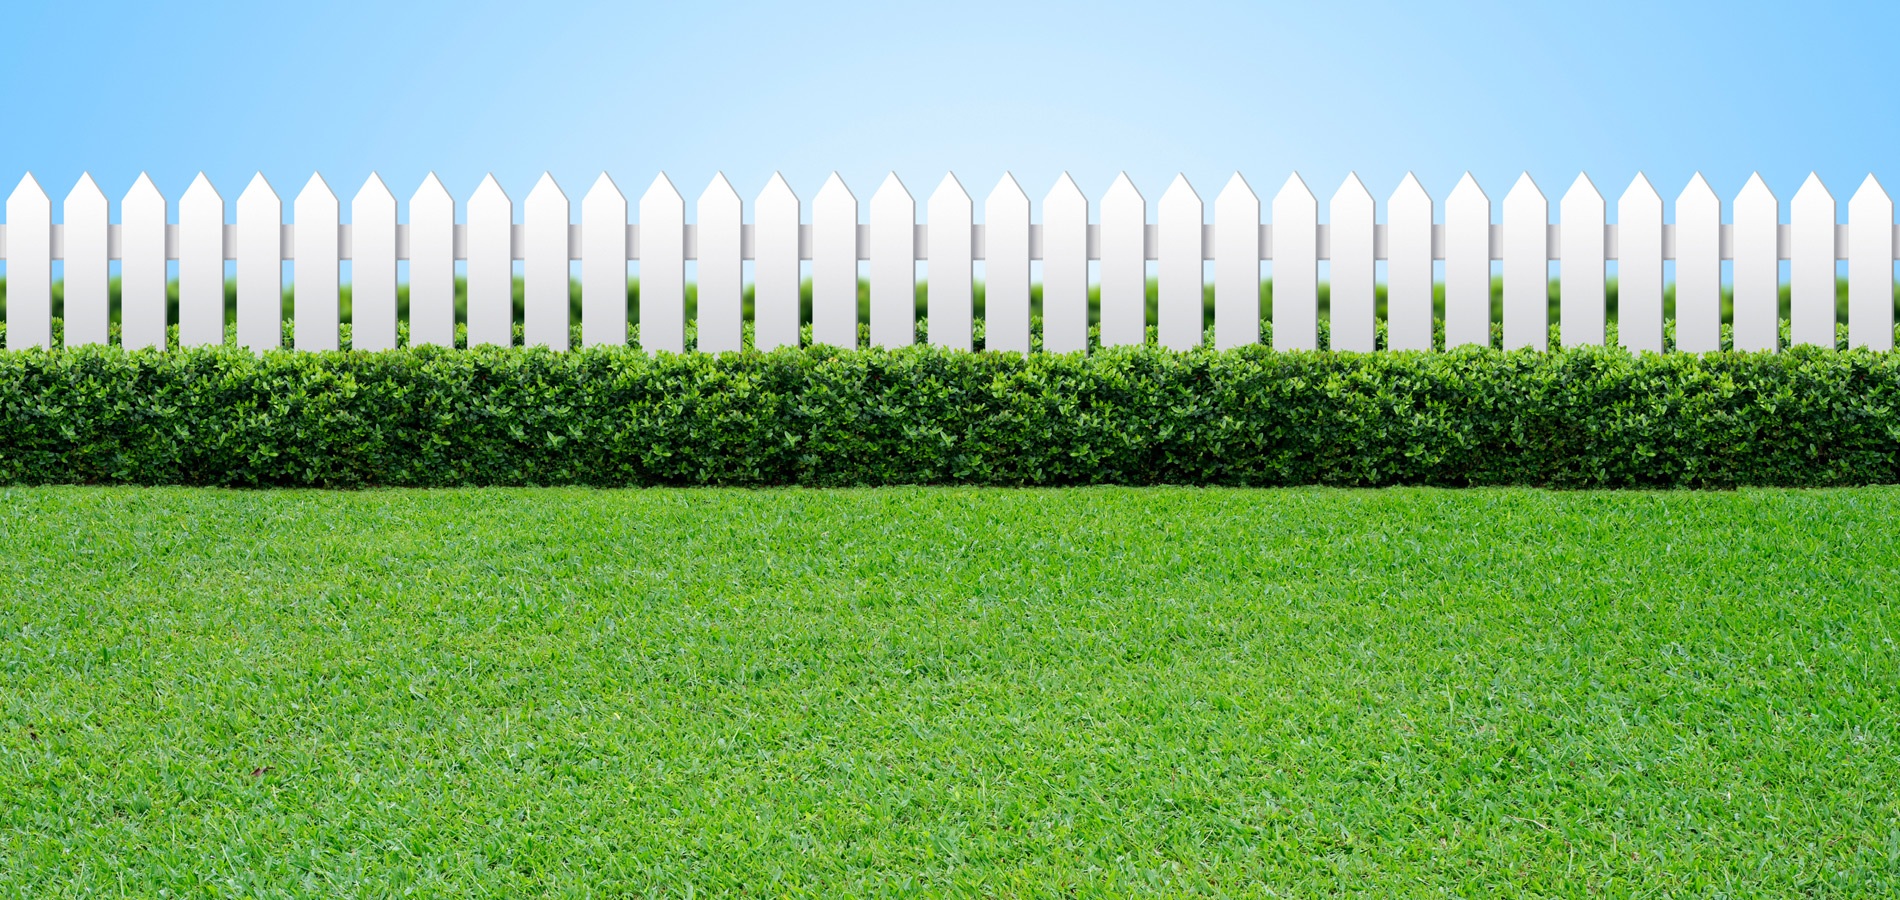 Grass and White Picket Fence